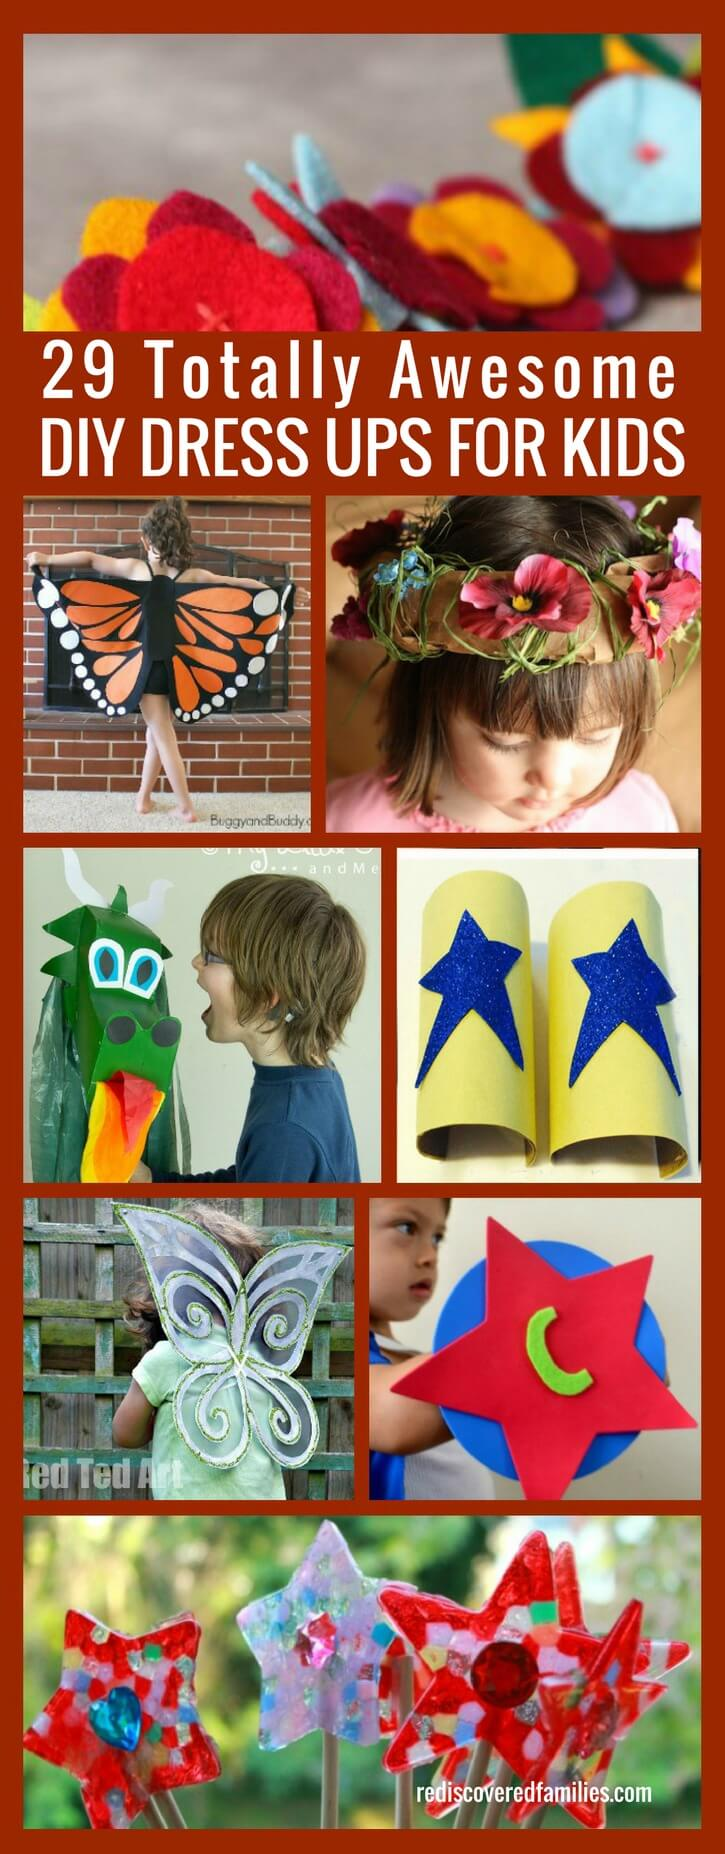 29 Totally Awesome DIY Dressups For Kids